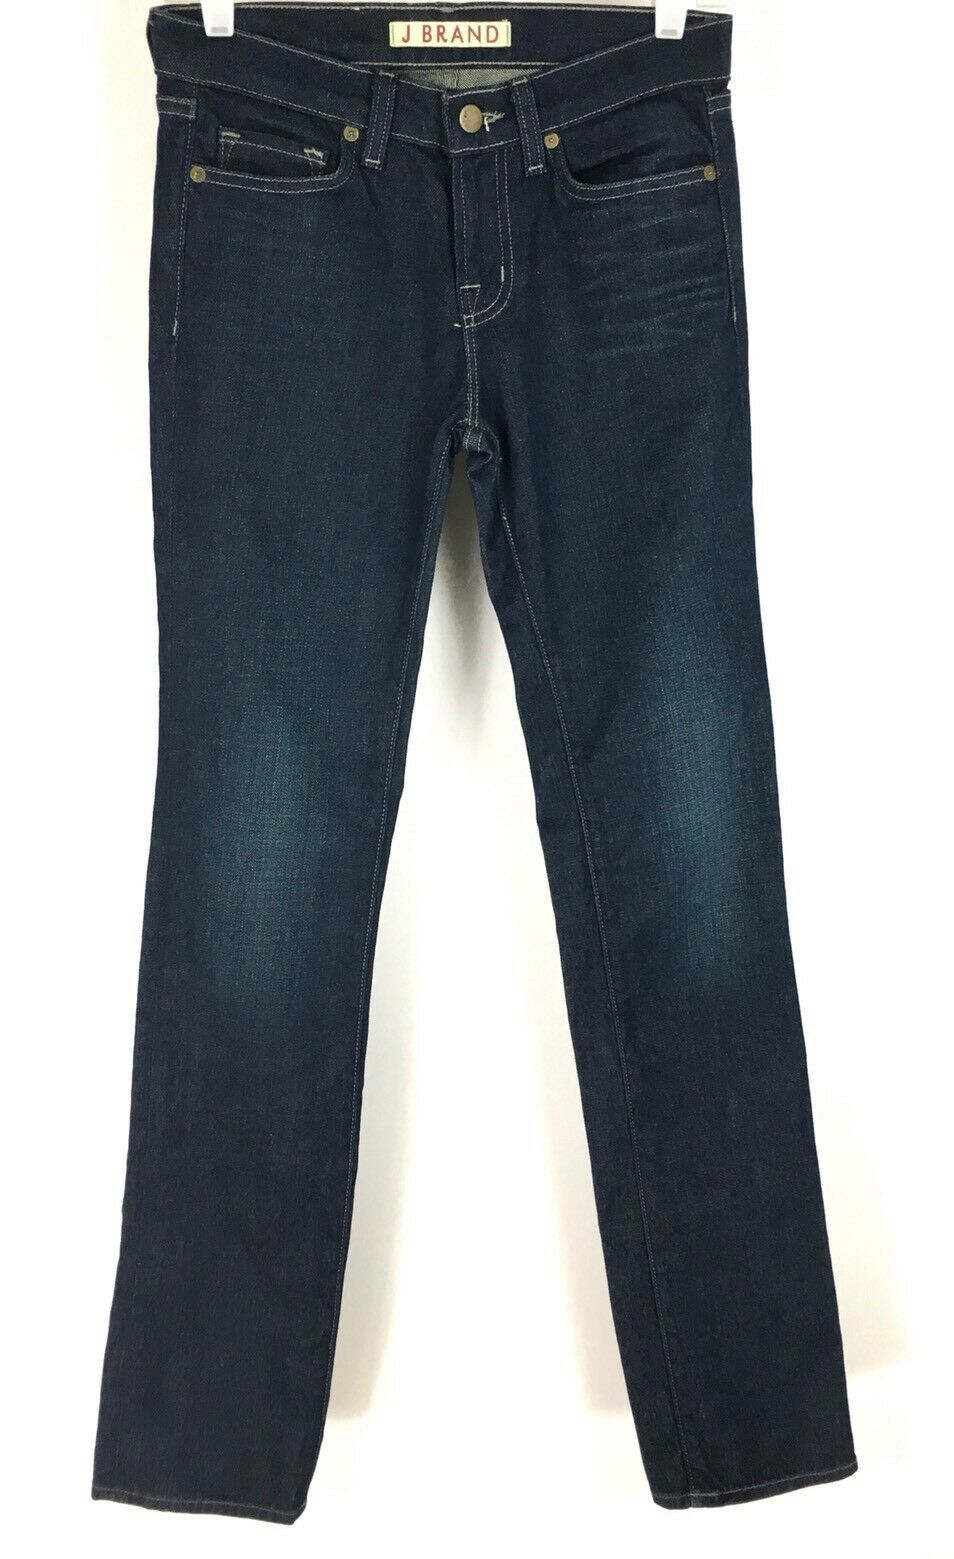 J Brand Womens The Cigarette Leg Jeans Slim Fit Stovepipe Mid Rise Size 26 NWT